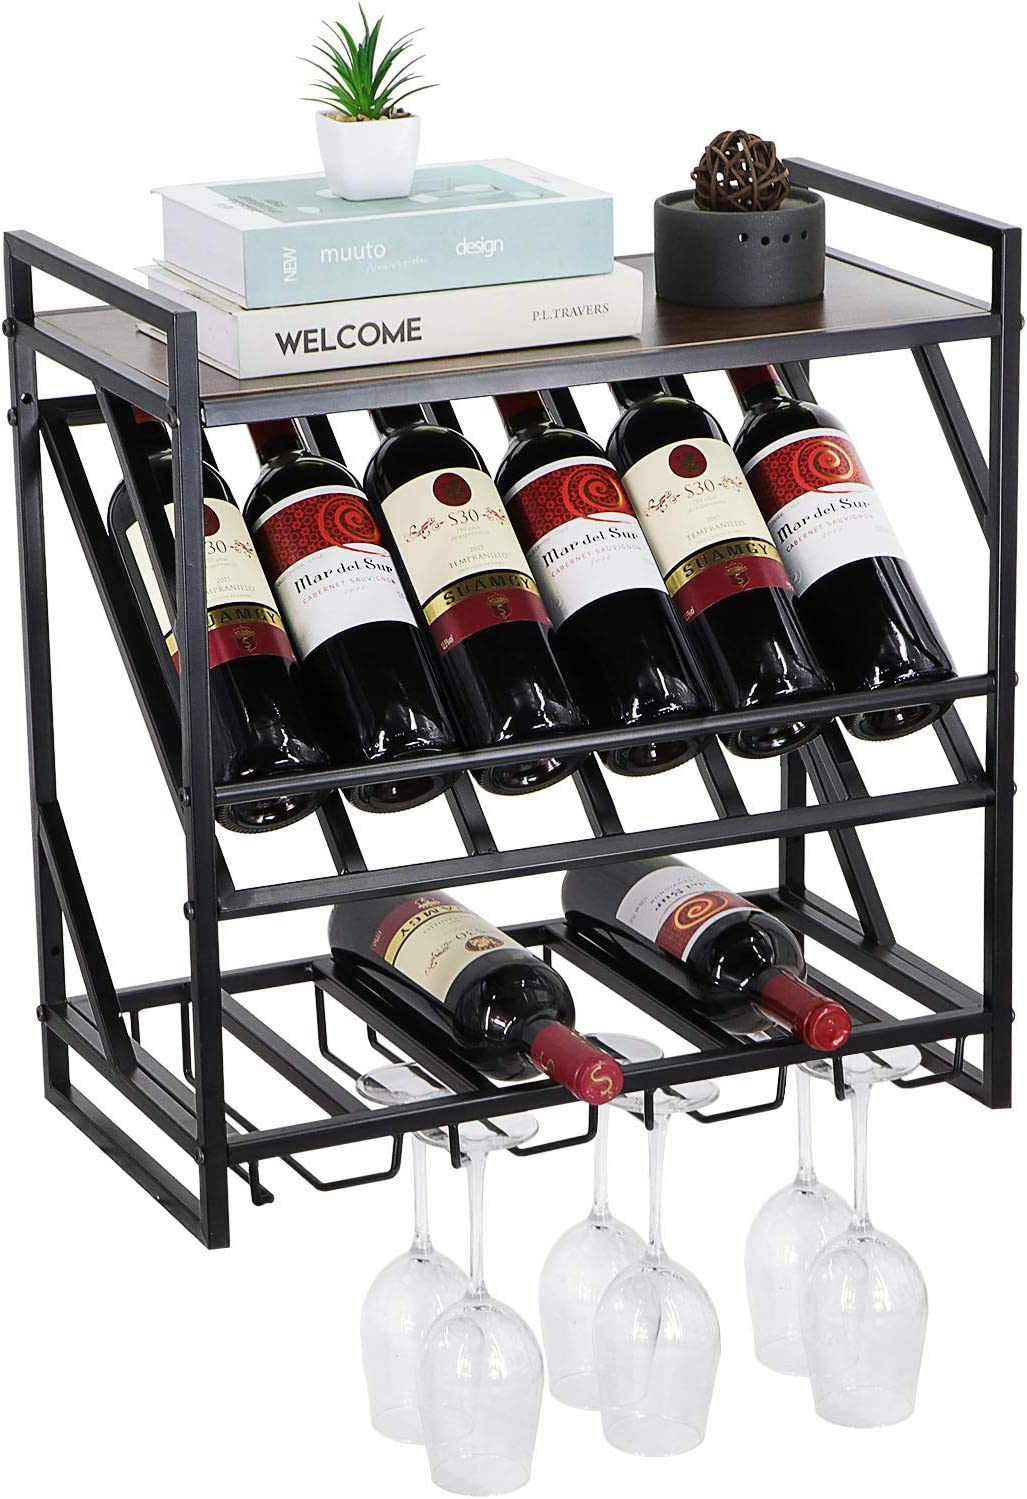 Vintage Wall Mounted Fresno Mall Wine Sh Rustic Rack Max 60% OFF Floating